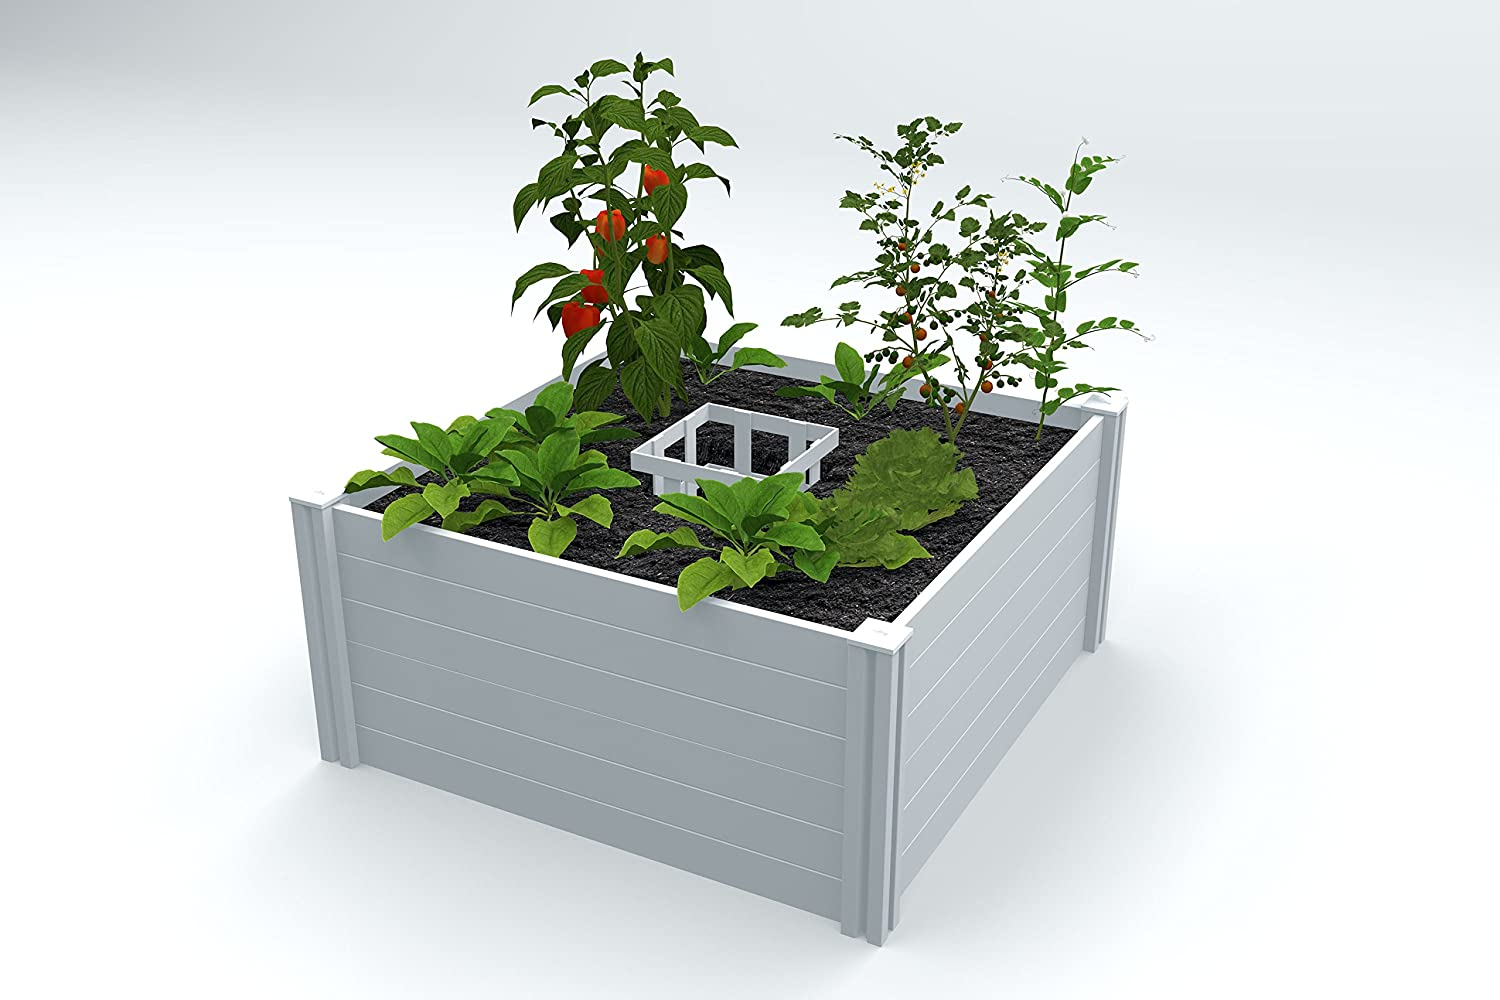 Garden or composting boxes not made of wood and of the right size can often be used as whelping boxes.